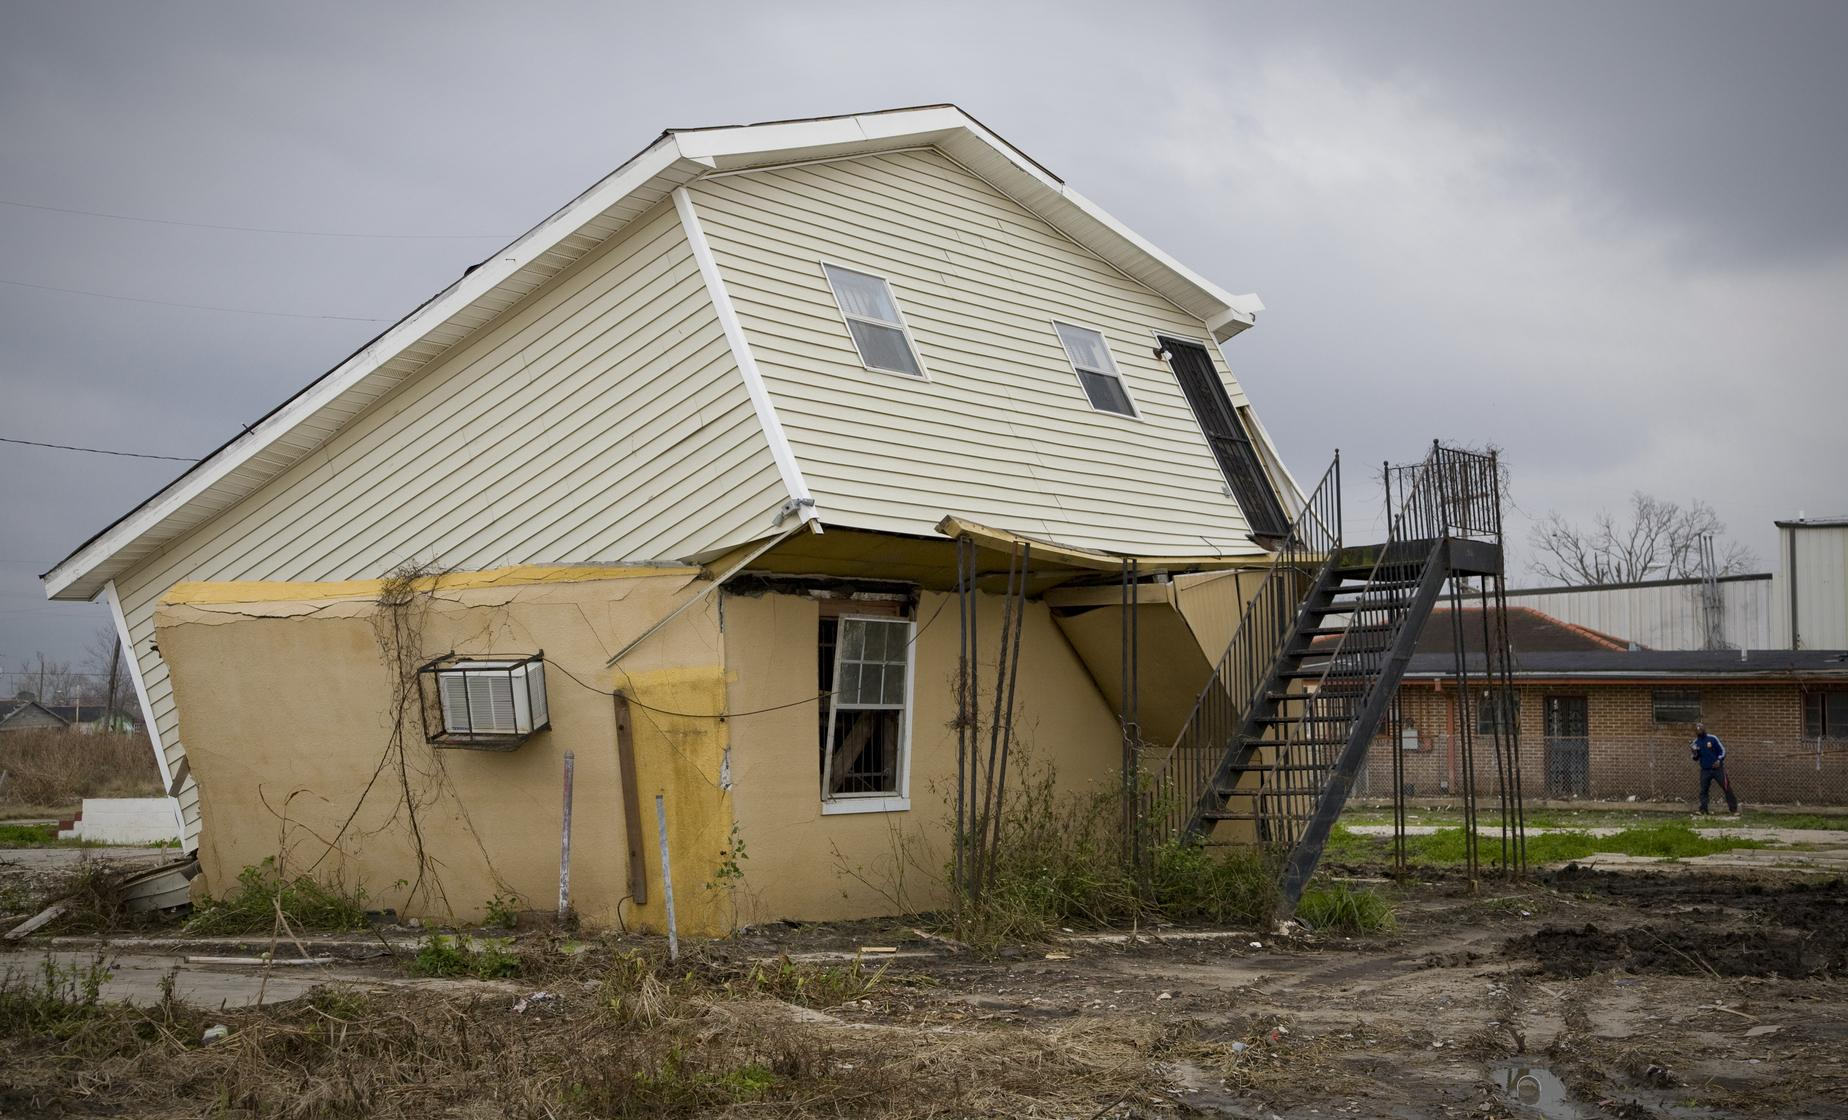 Hurricane Katrina Tour in New Orleans (New Orleans East, St. Bernard, Lakeview, Gentilly)